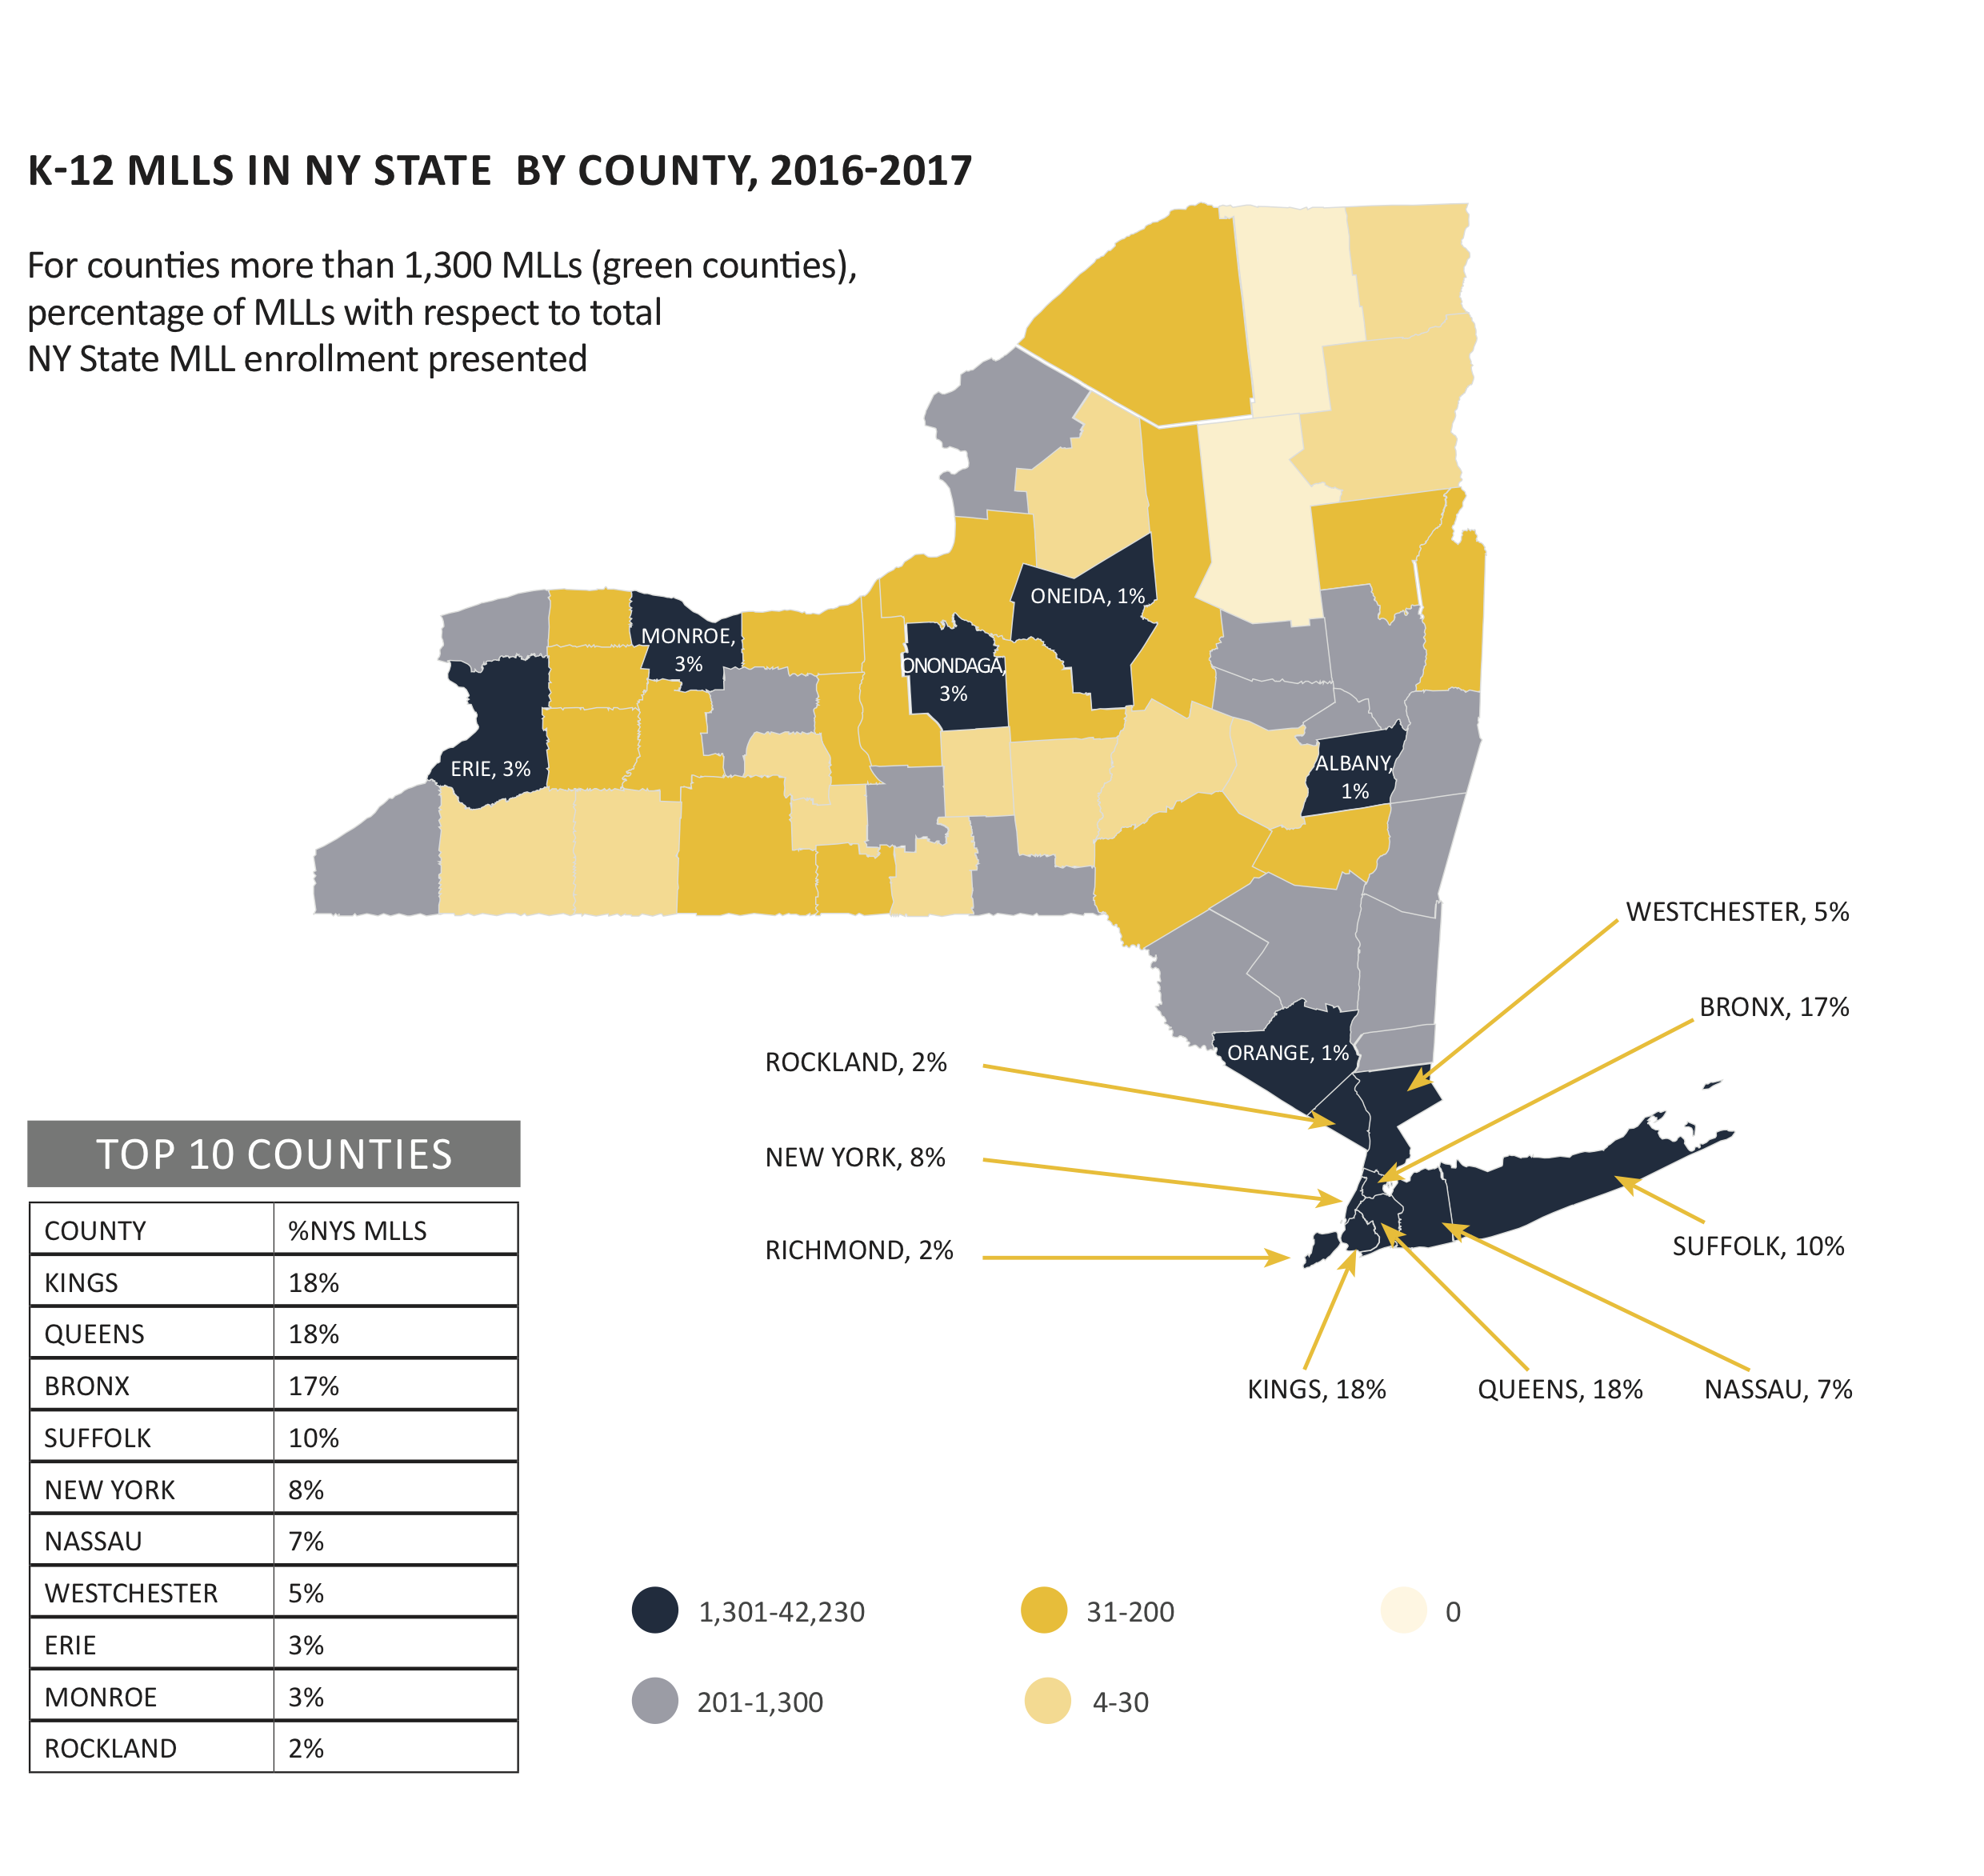 Source: The New York State Report Card 2016-2017, New York State Education Department.